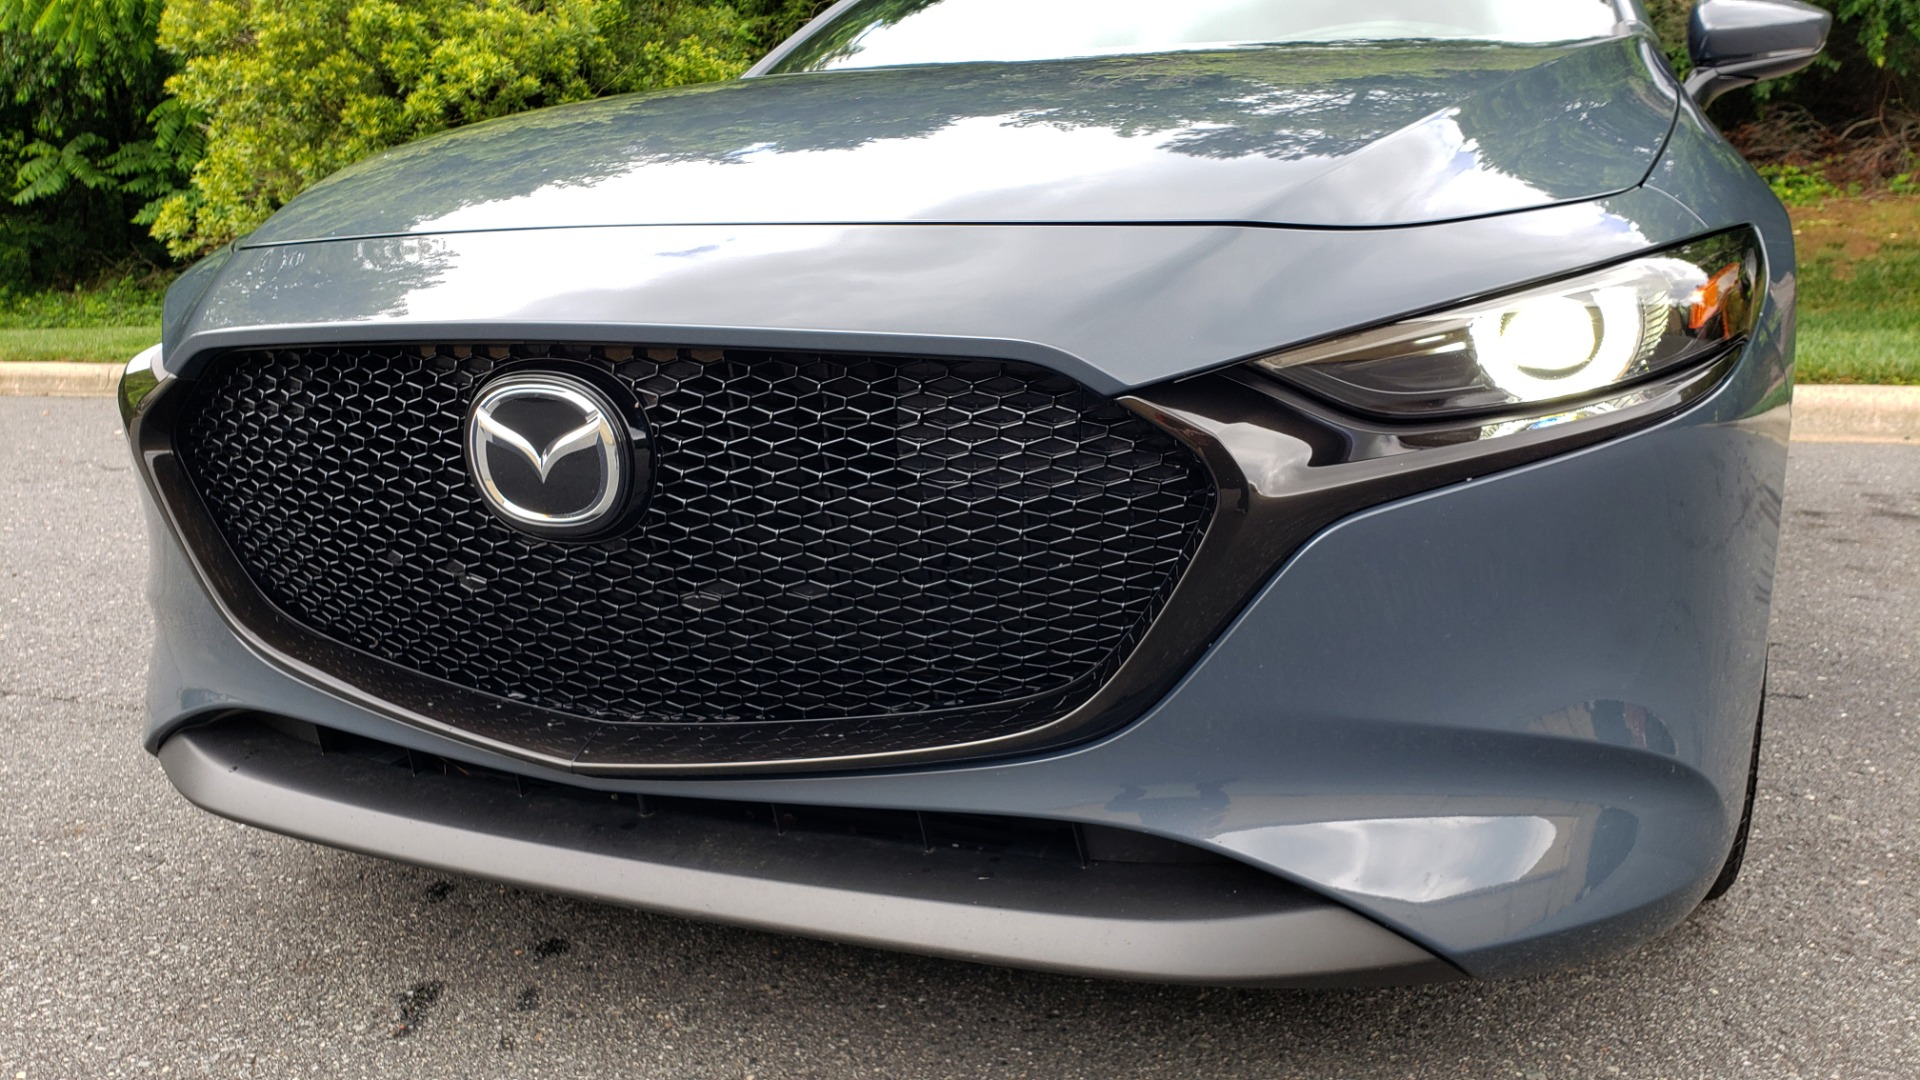 Used 2019 Mazda MAZDA3 HATCHBACK PREMIUM PKG / AUTO / 18IN BLACK ALLOY WHEELS / BOSE / LEATHER for sale Sold at Formula Imports in Charlotte NC 28227 20